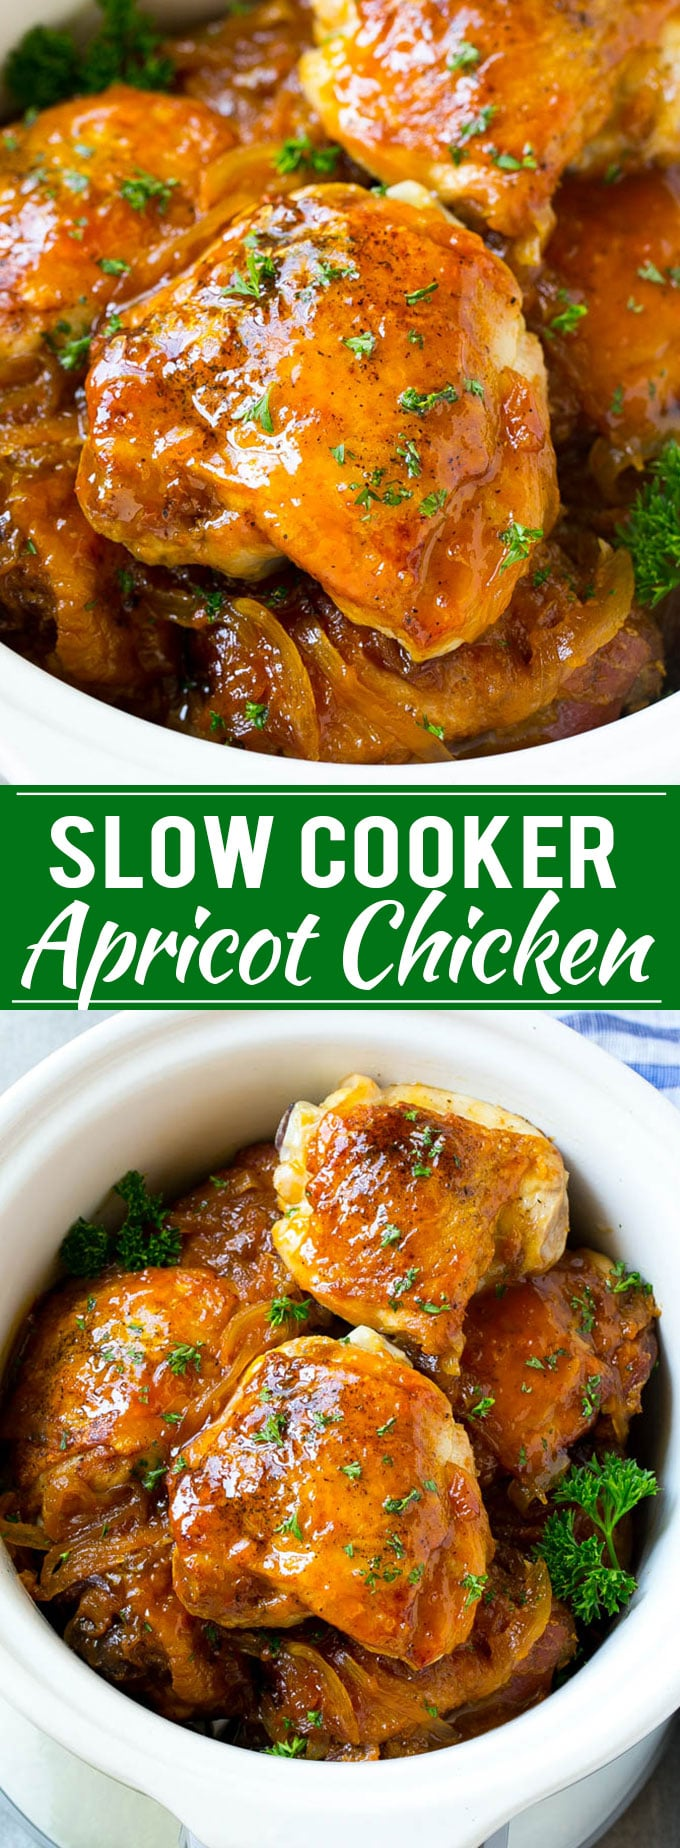 Slow Cooker Apricot Chicken Recipe | Apricot Chicken | Slow Cooker Chicken | Easy Chicken Recipe